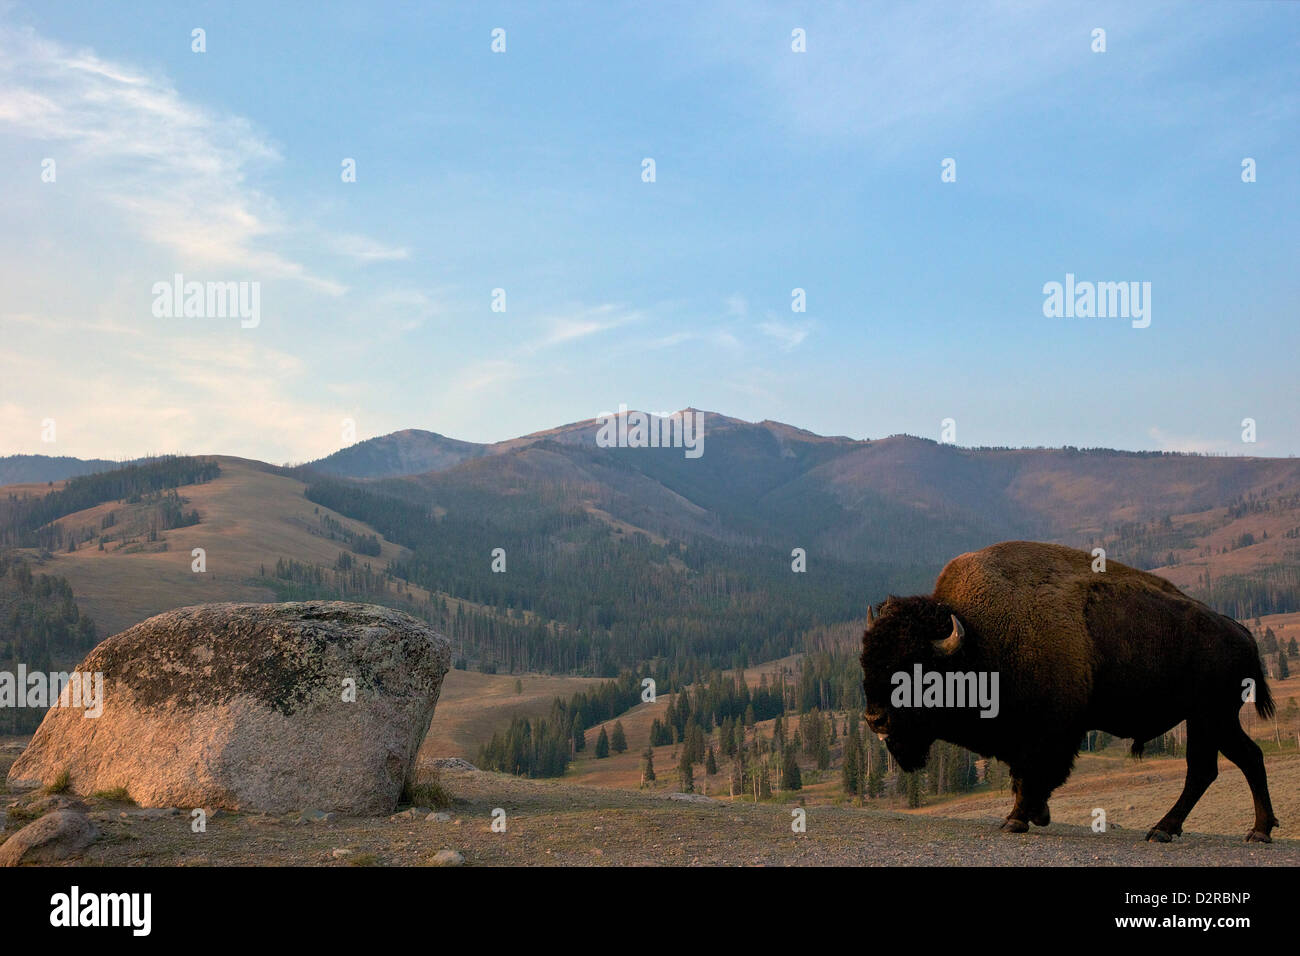 Bison and Mount Washburn in early morning light, Yellowstone National Park, Wyoming, USA - Stock Image